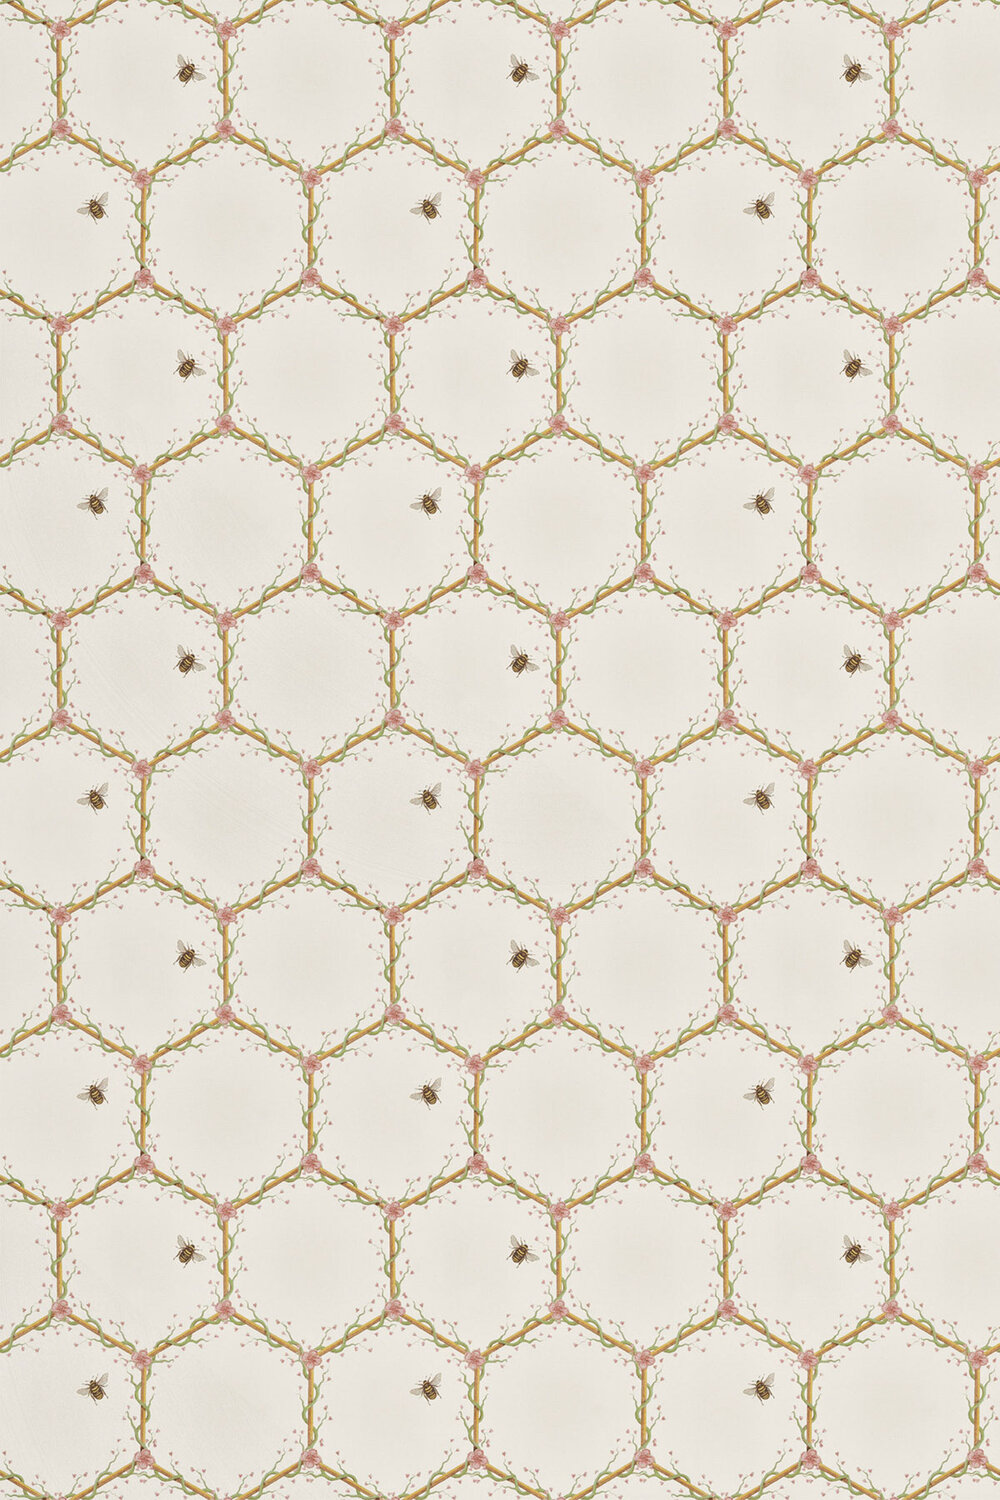 Honeycomb Fabric - Cream - by The Chateau by Angel Strawbridge